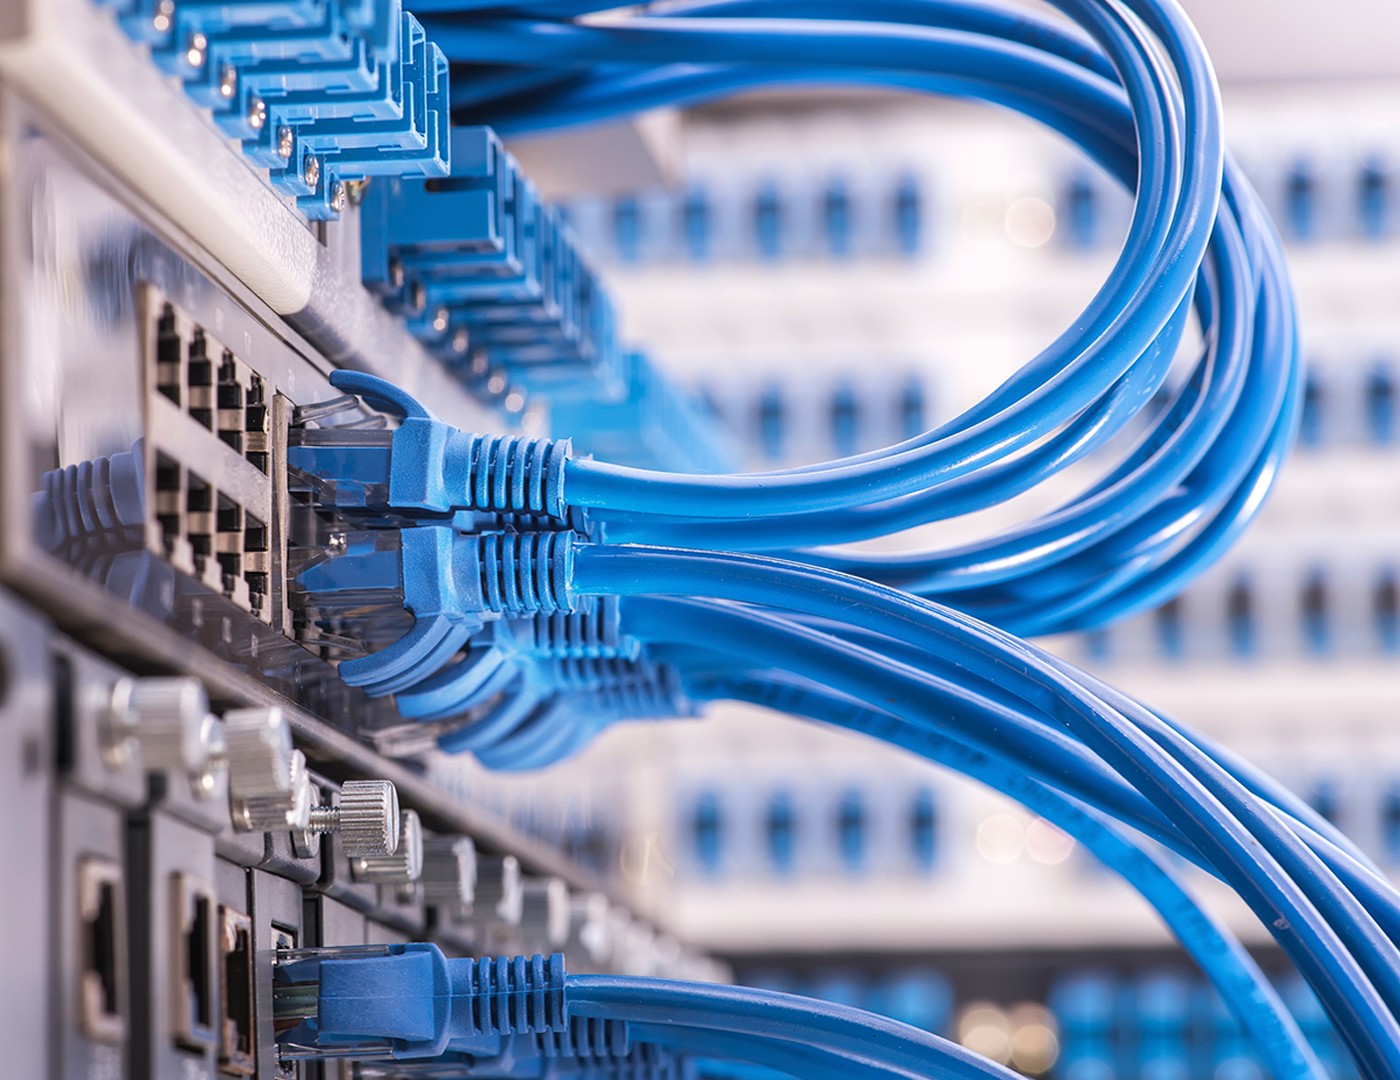 hight resolution of interactive cabling pty ltd has established itself as a major installer of telecommunications cabling and services we specialise in fibre optic